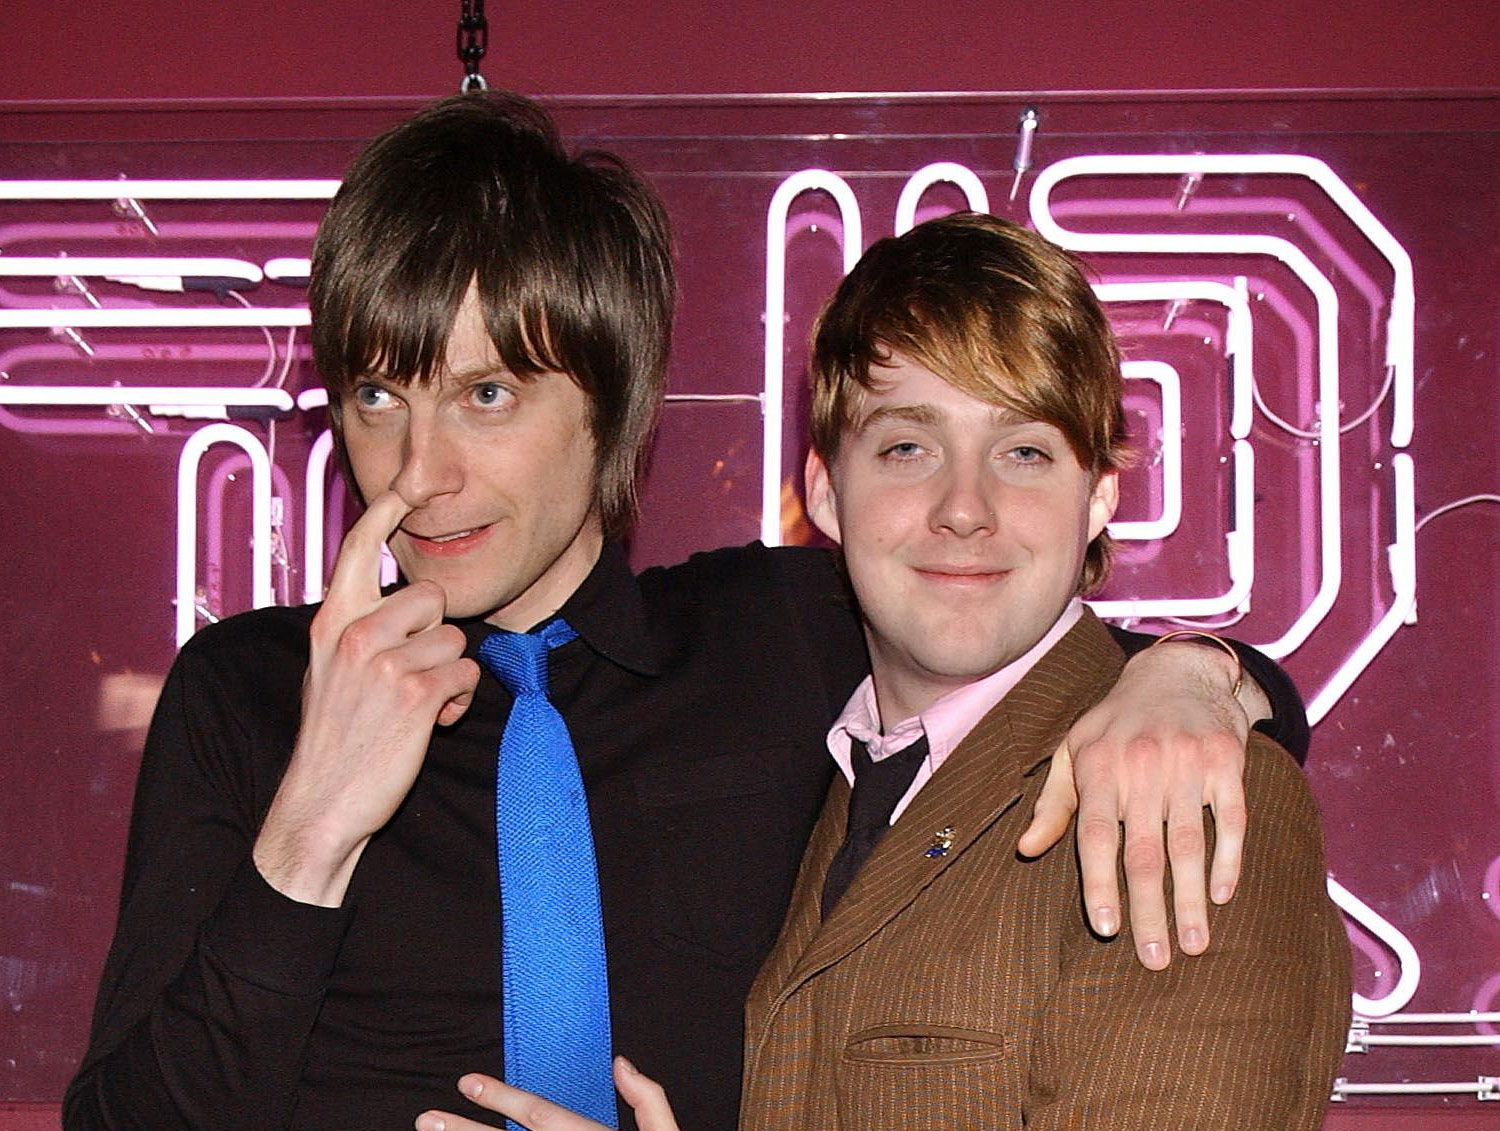 Nick Hodgson and Ricky Wilson in 2005 at MTV's TRL